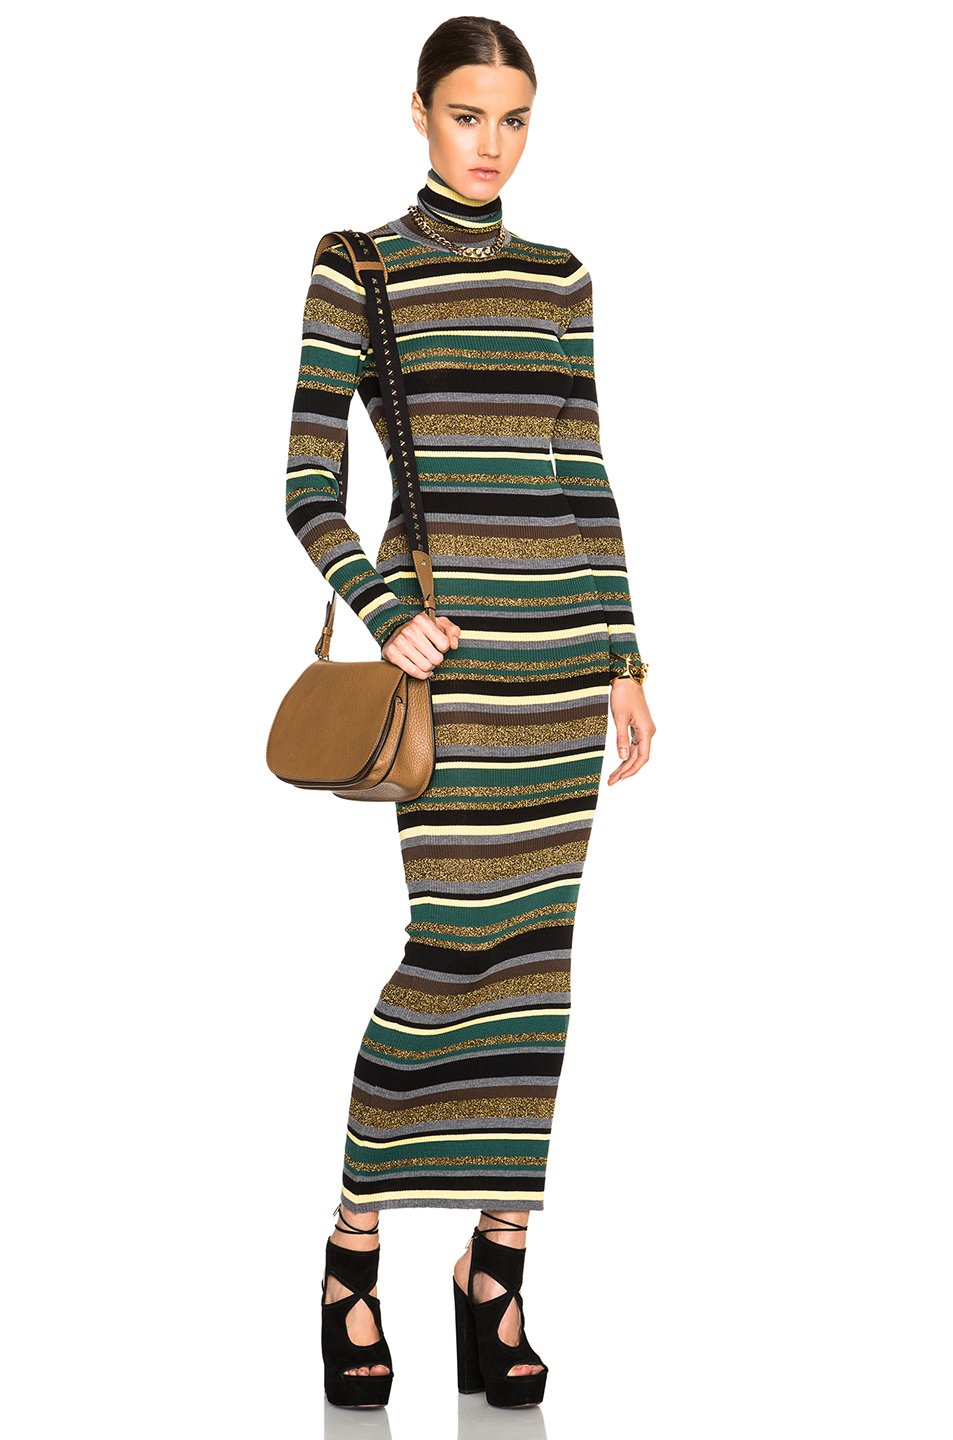 Emilio pucci Striped Knit Long Dress in Green | Lyst